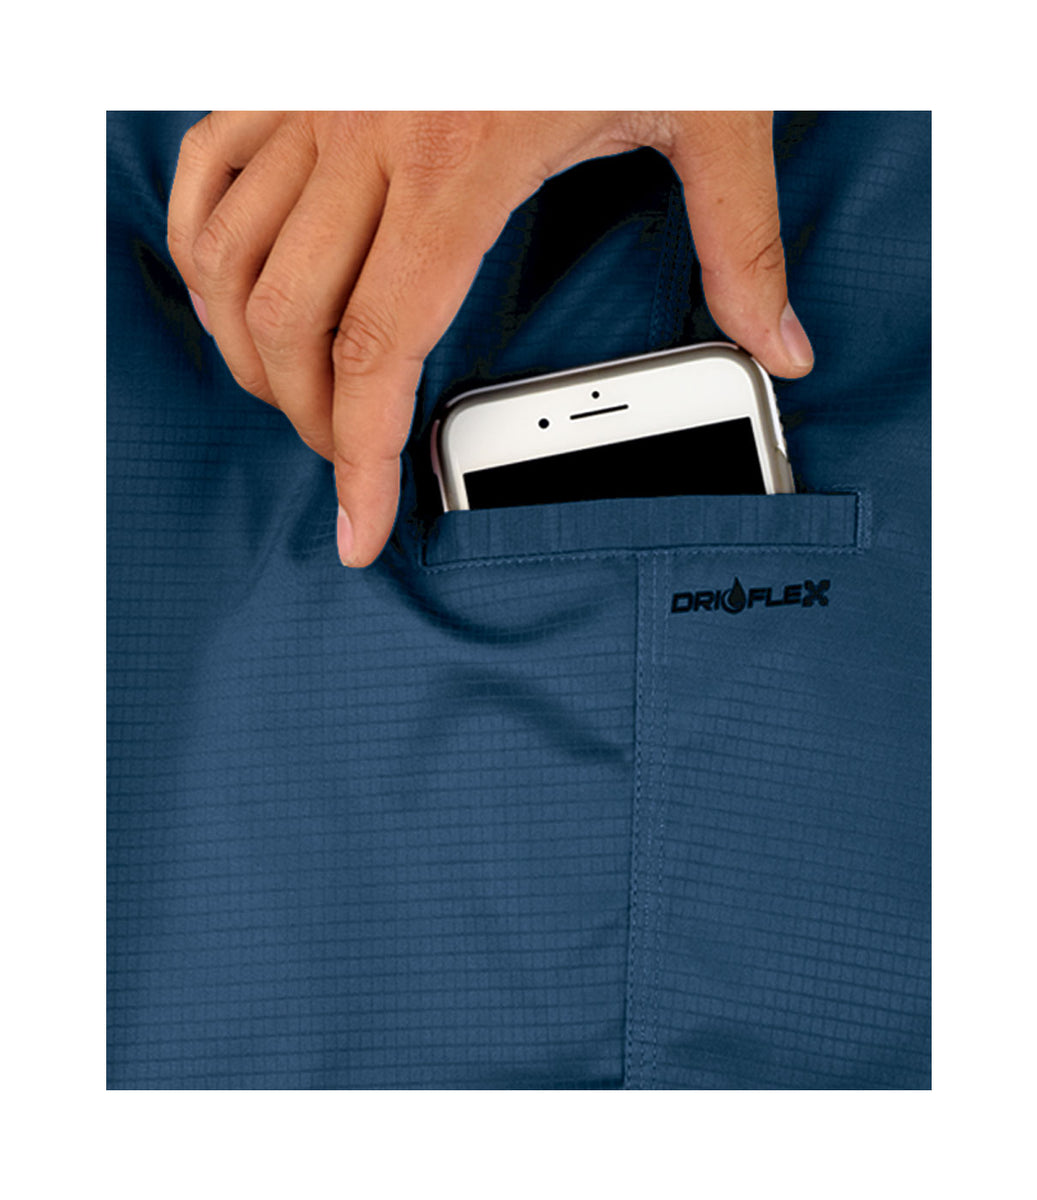 Dri-Flex Hybrid II Fishing Shorts Big Image - 6